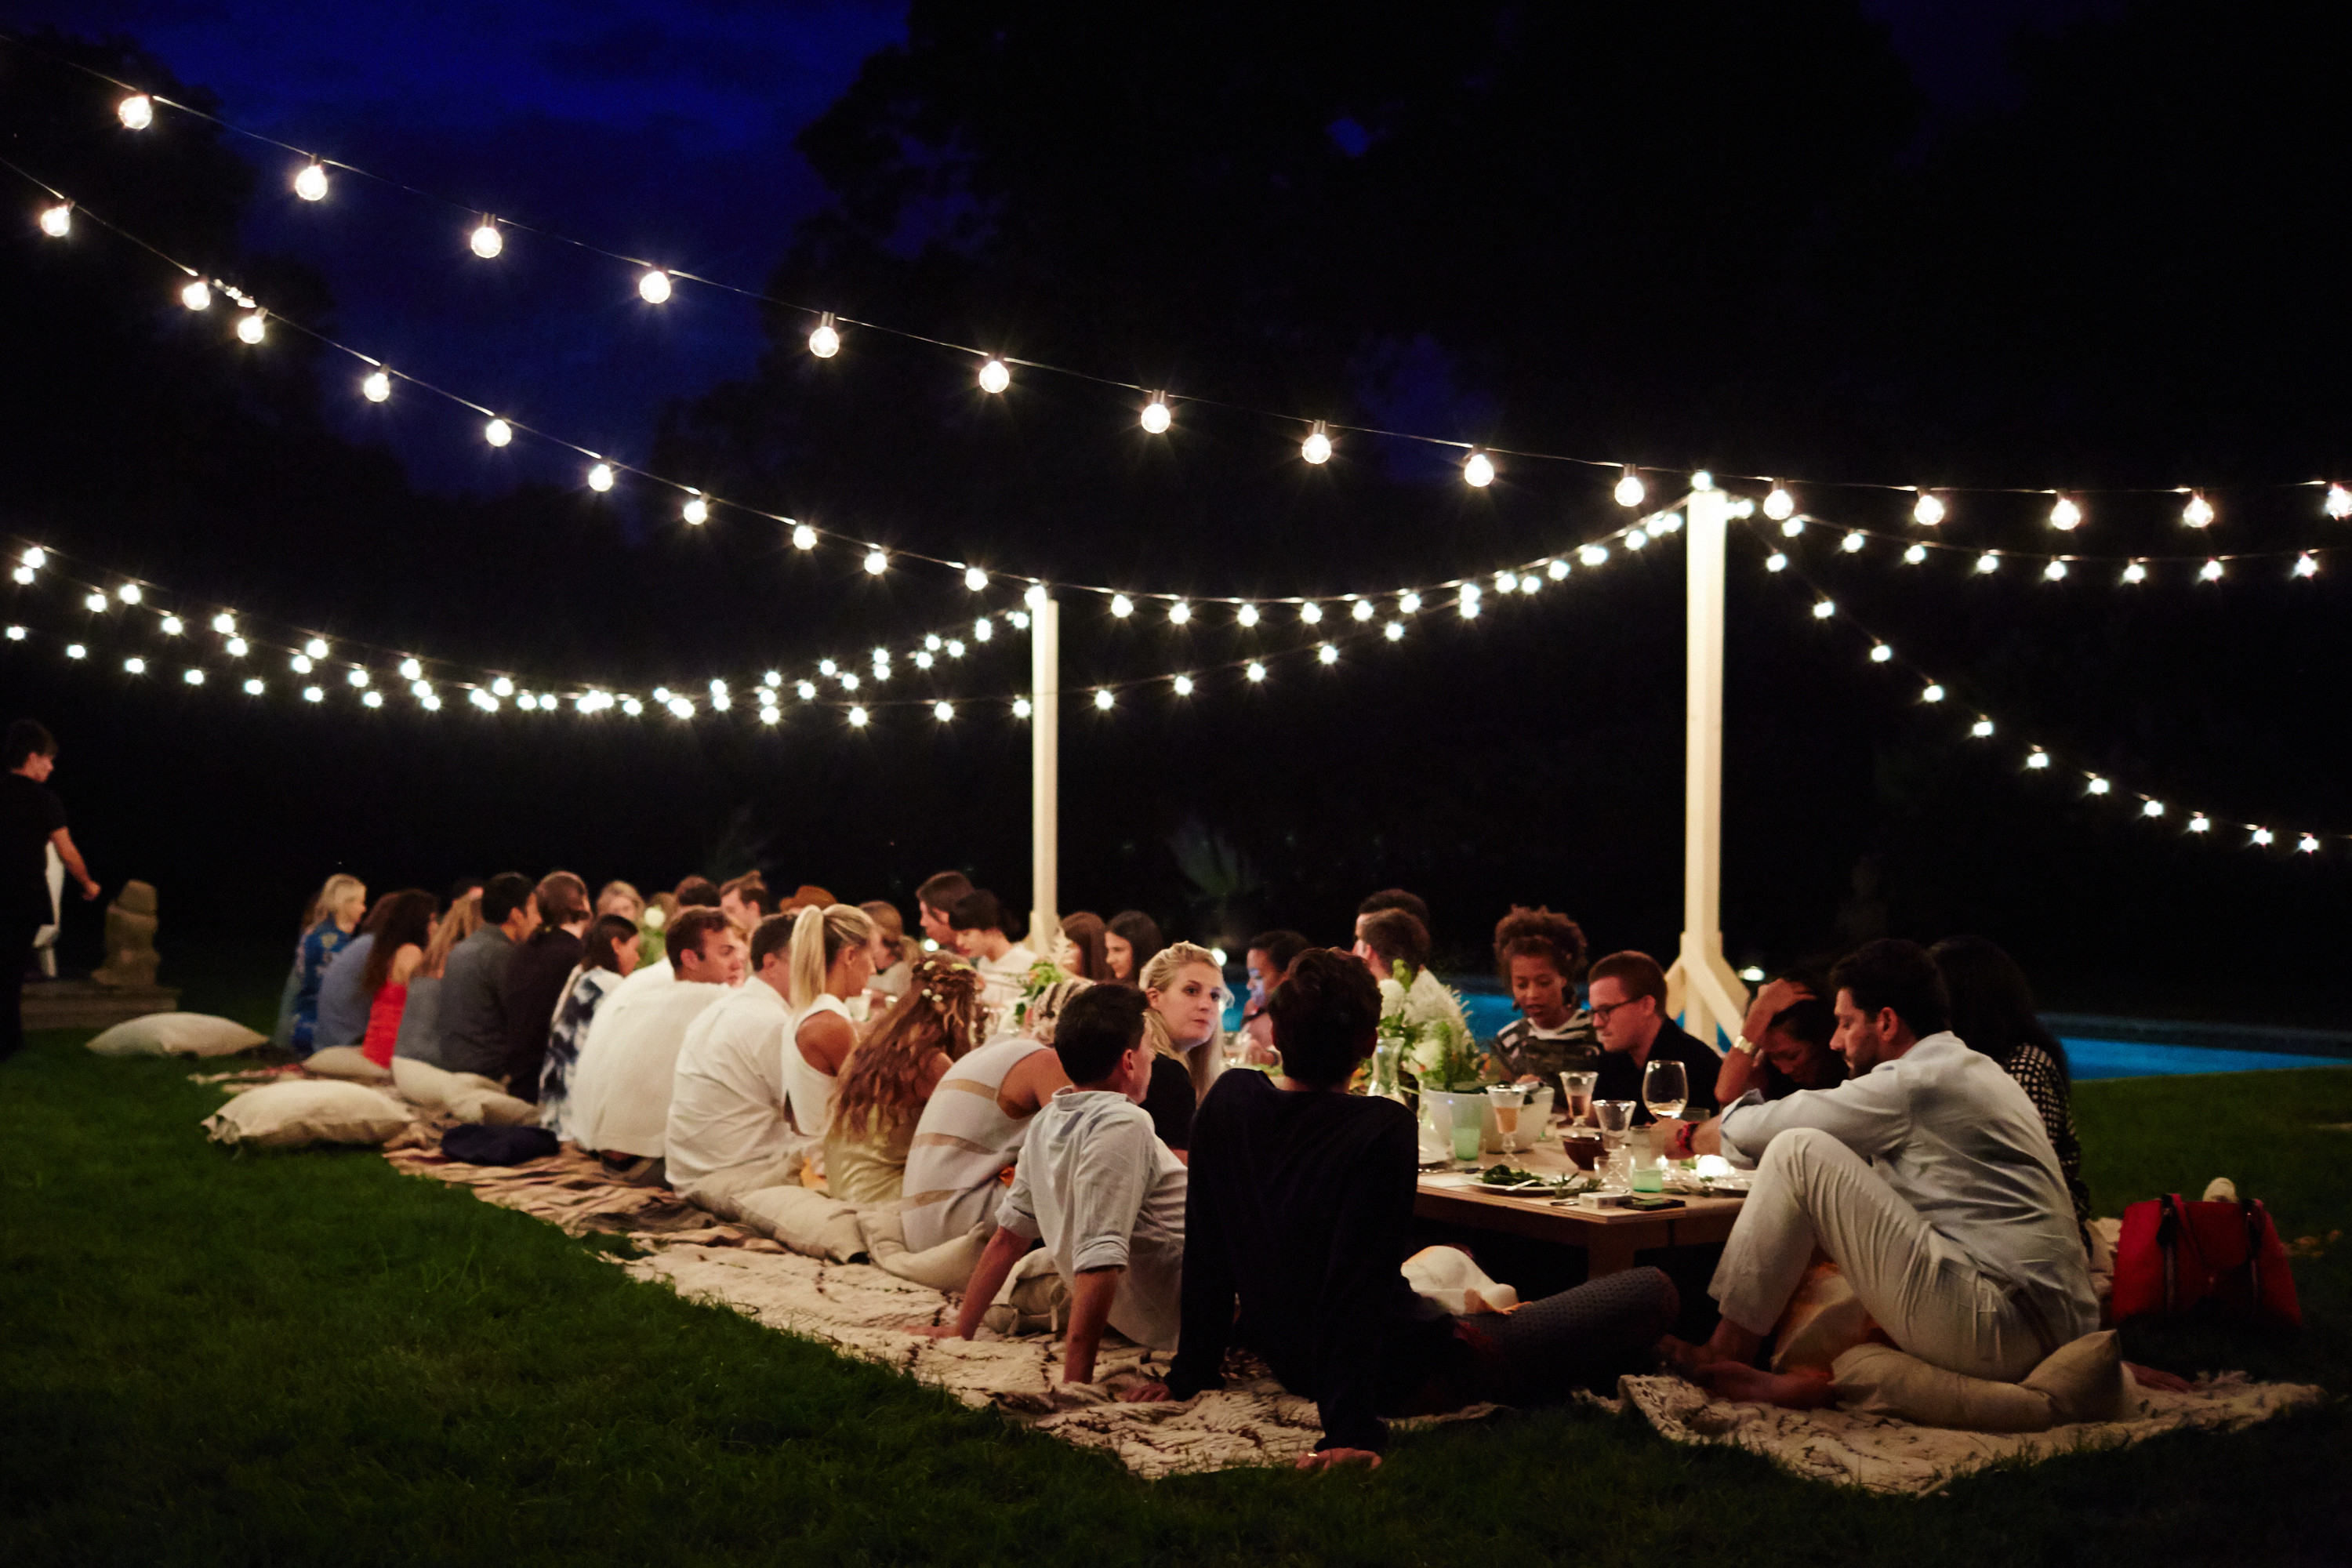 Diy Outdoor Party Lighting Christmas Diy Outdoor Party Lighting regarding 15 Some of the Coolest Designs of How to Build Backyard Party Lighting Ideas